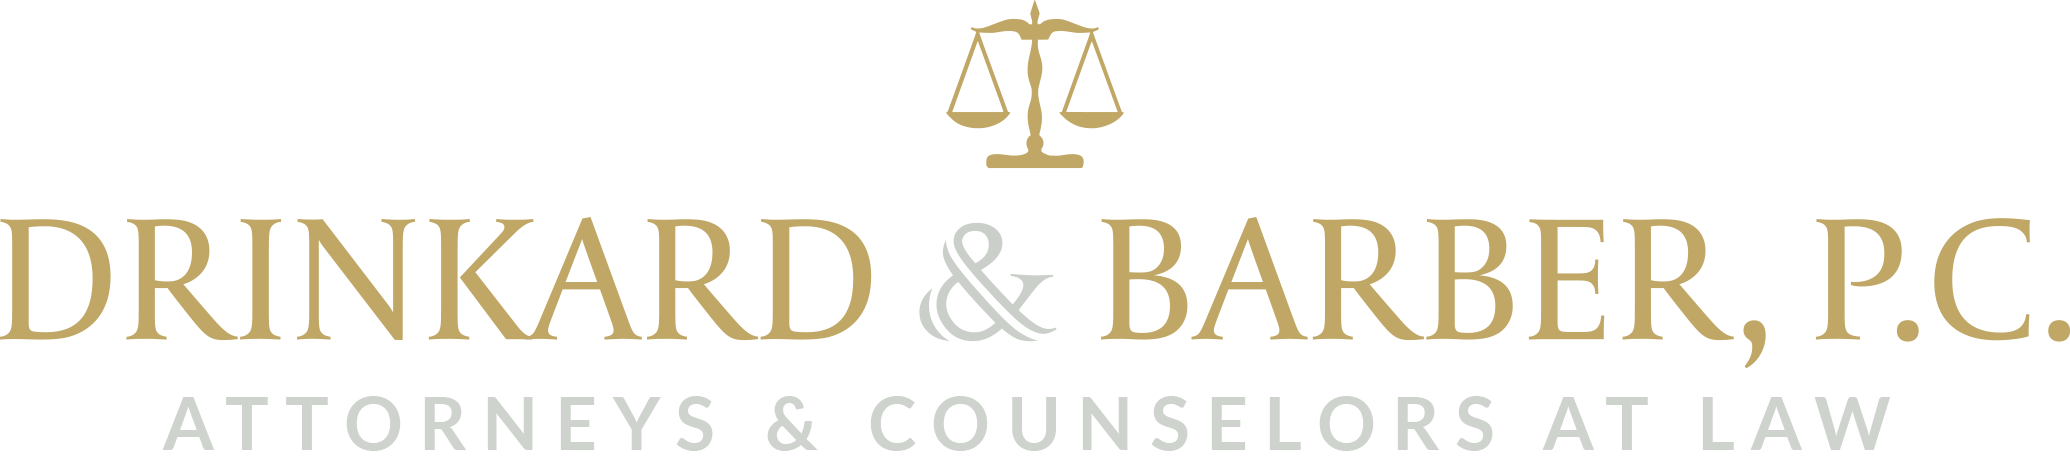 Alabama Trust Lawyer Drinkard and Barber P.C. Logo